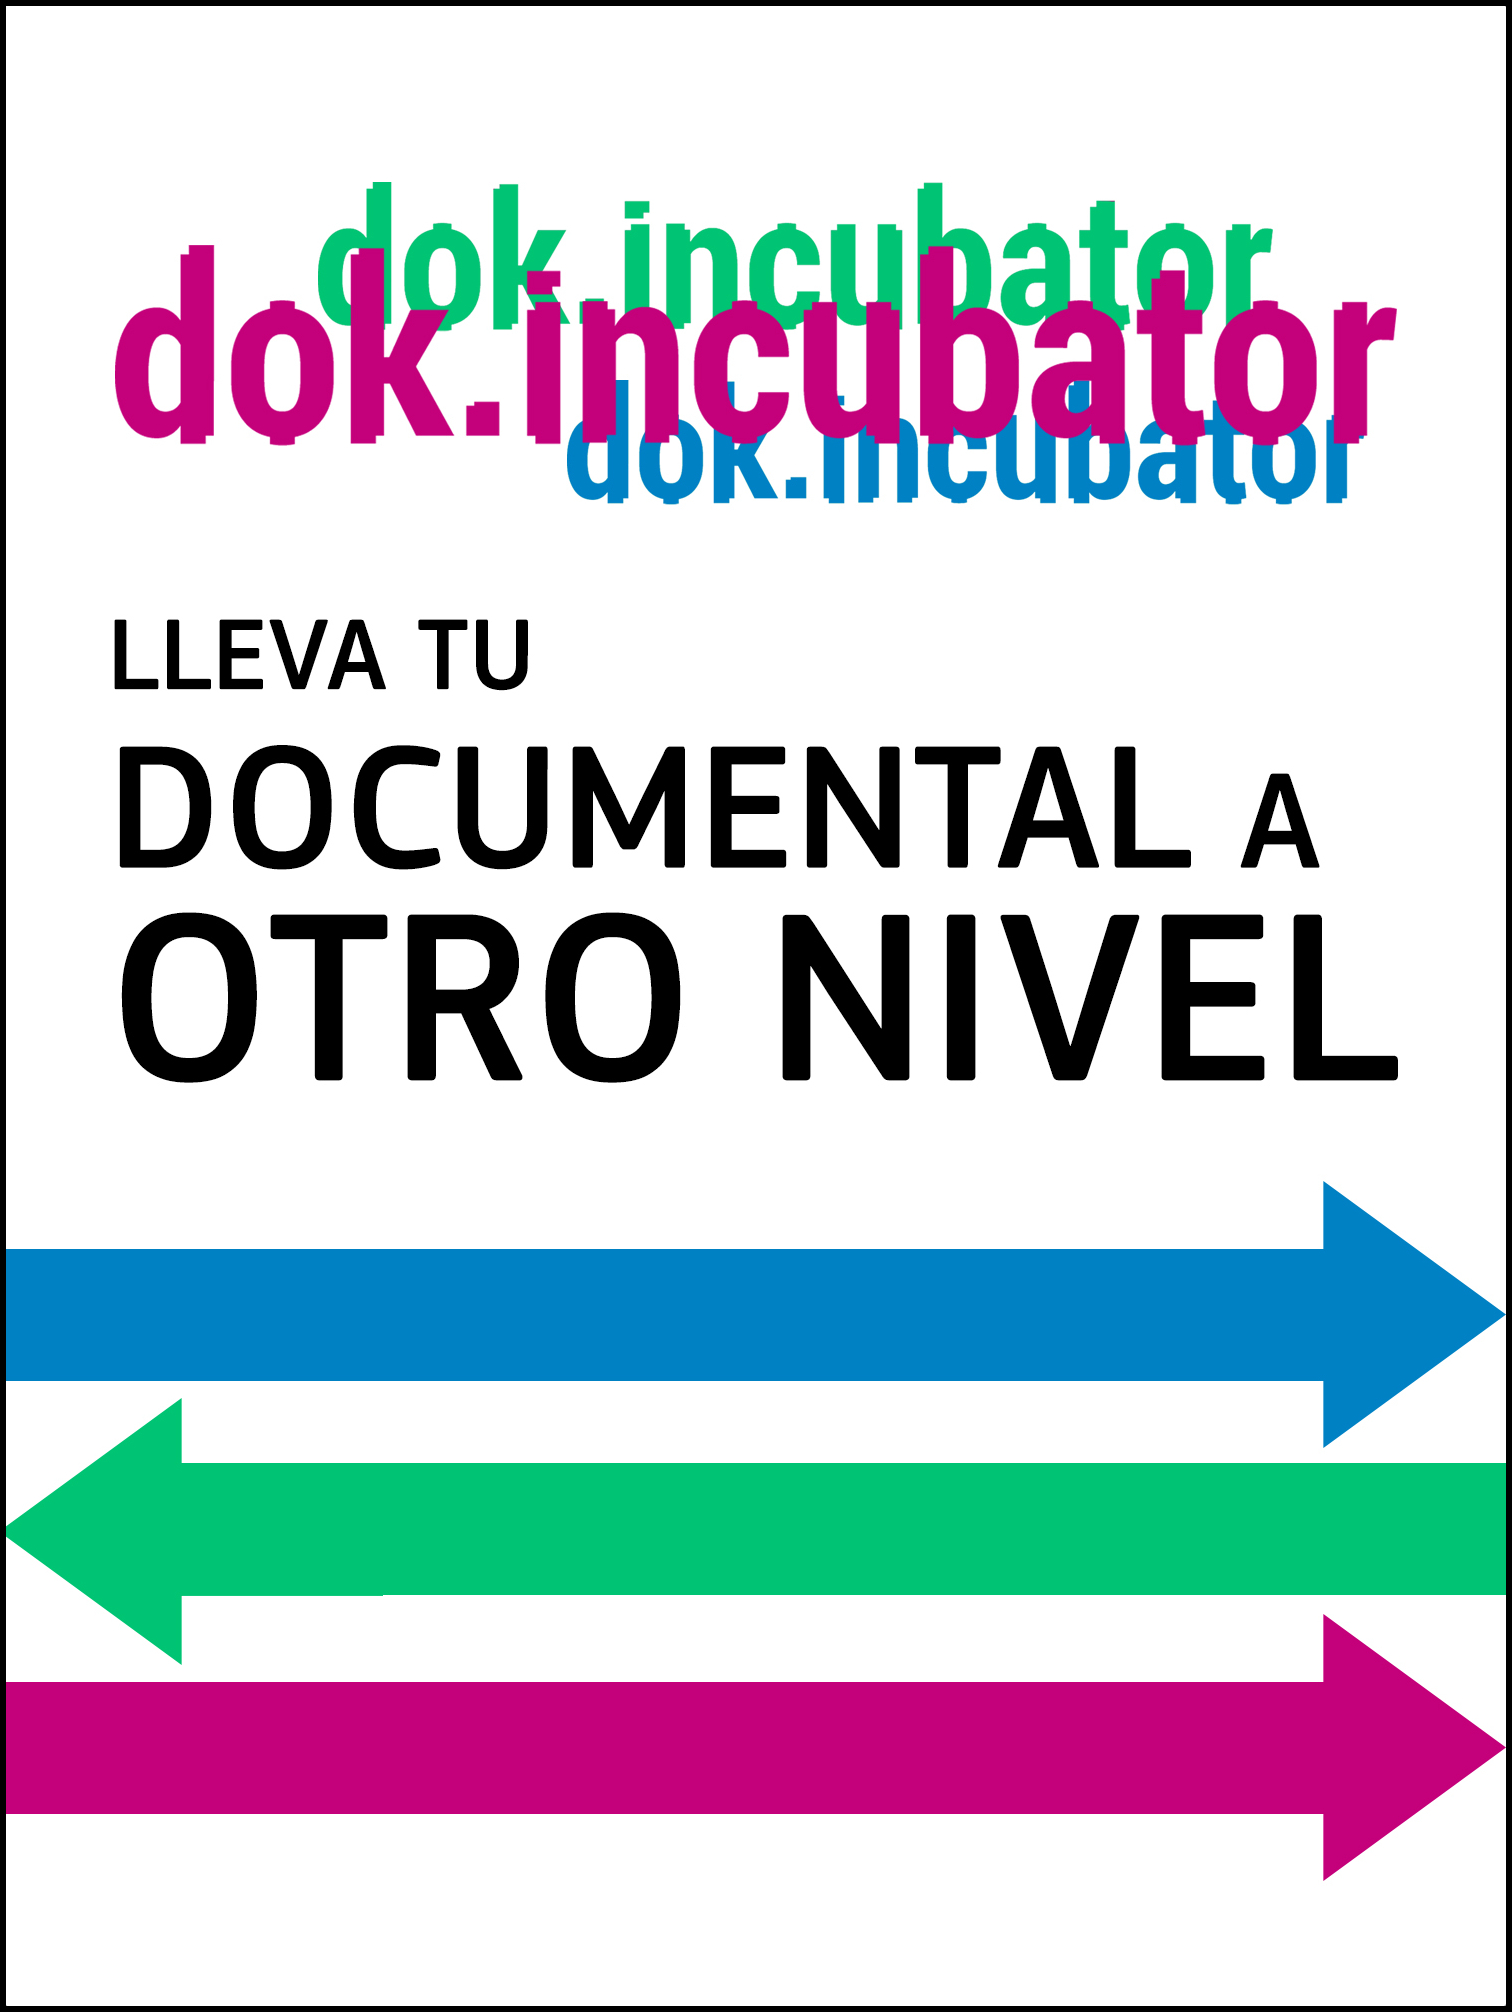 Doc.Incubator Interior Con Bordes